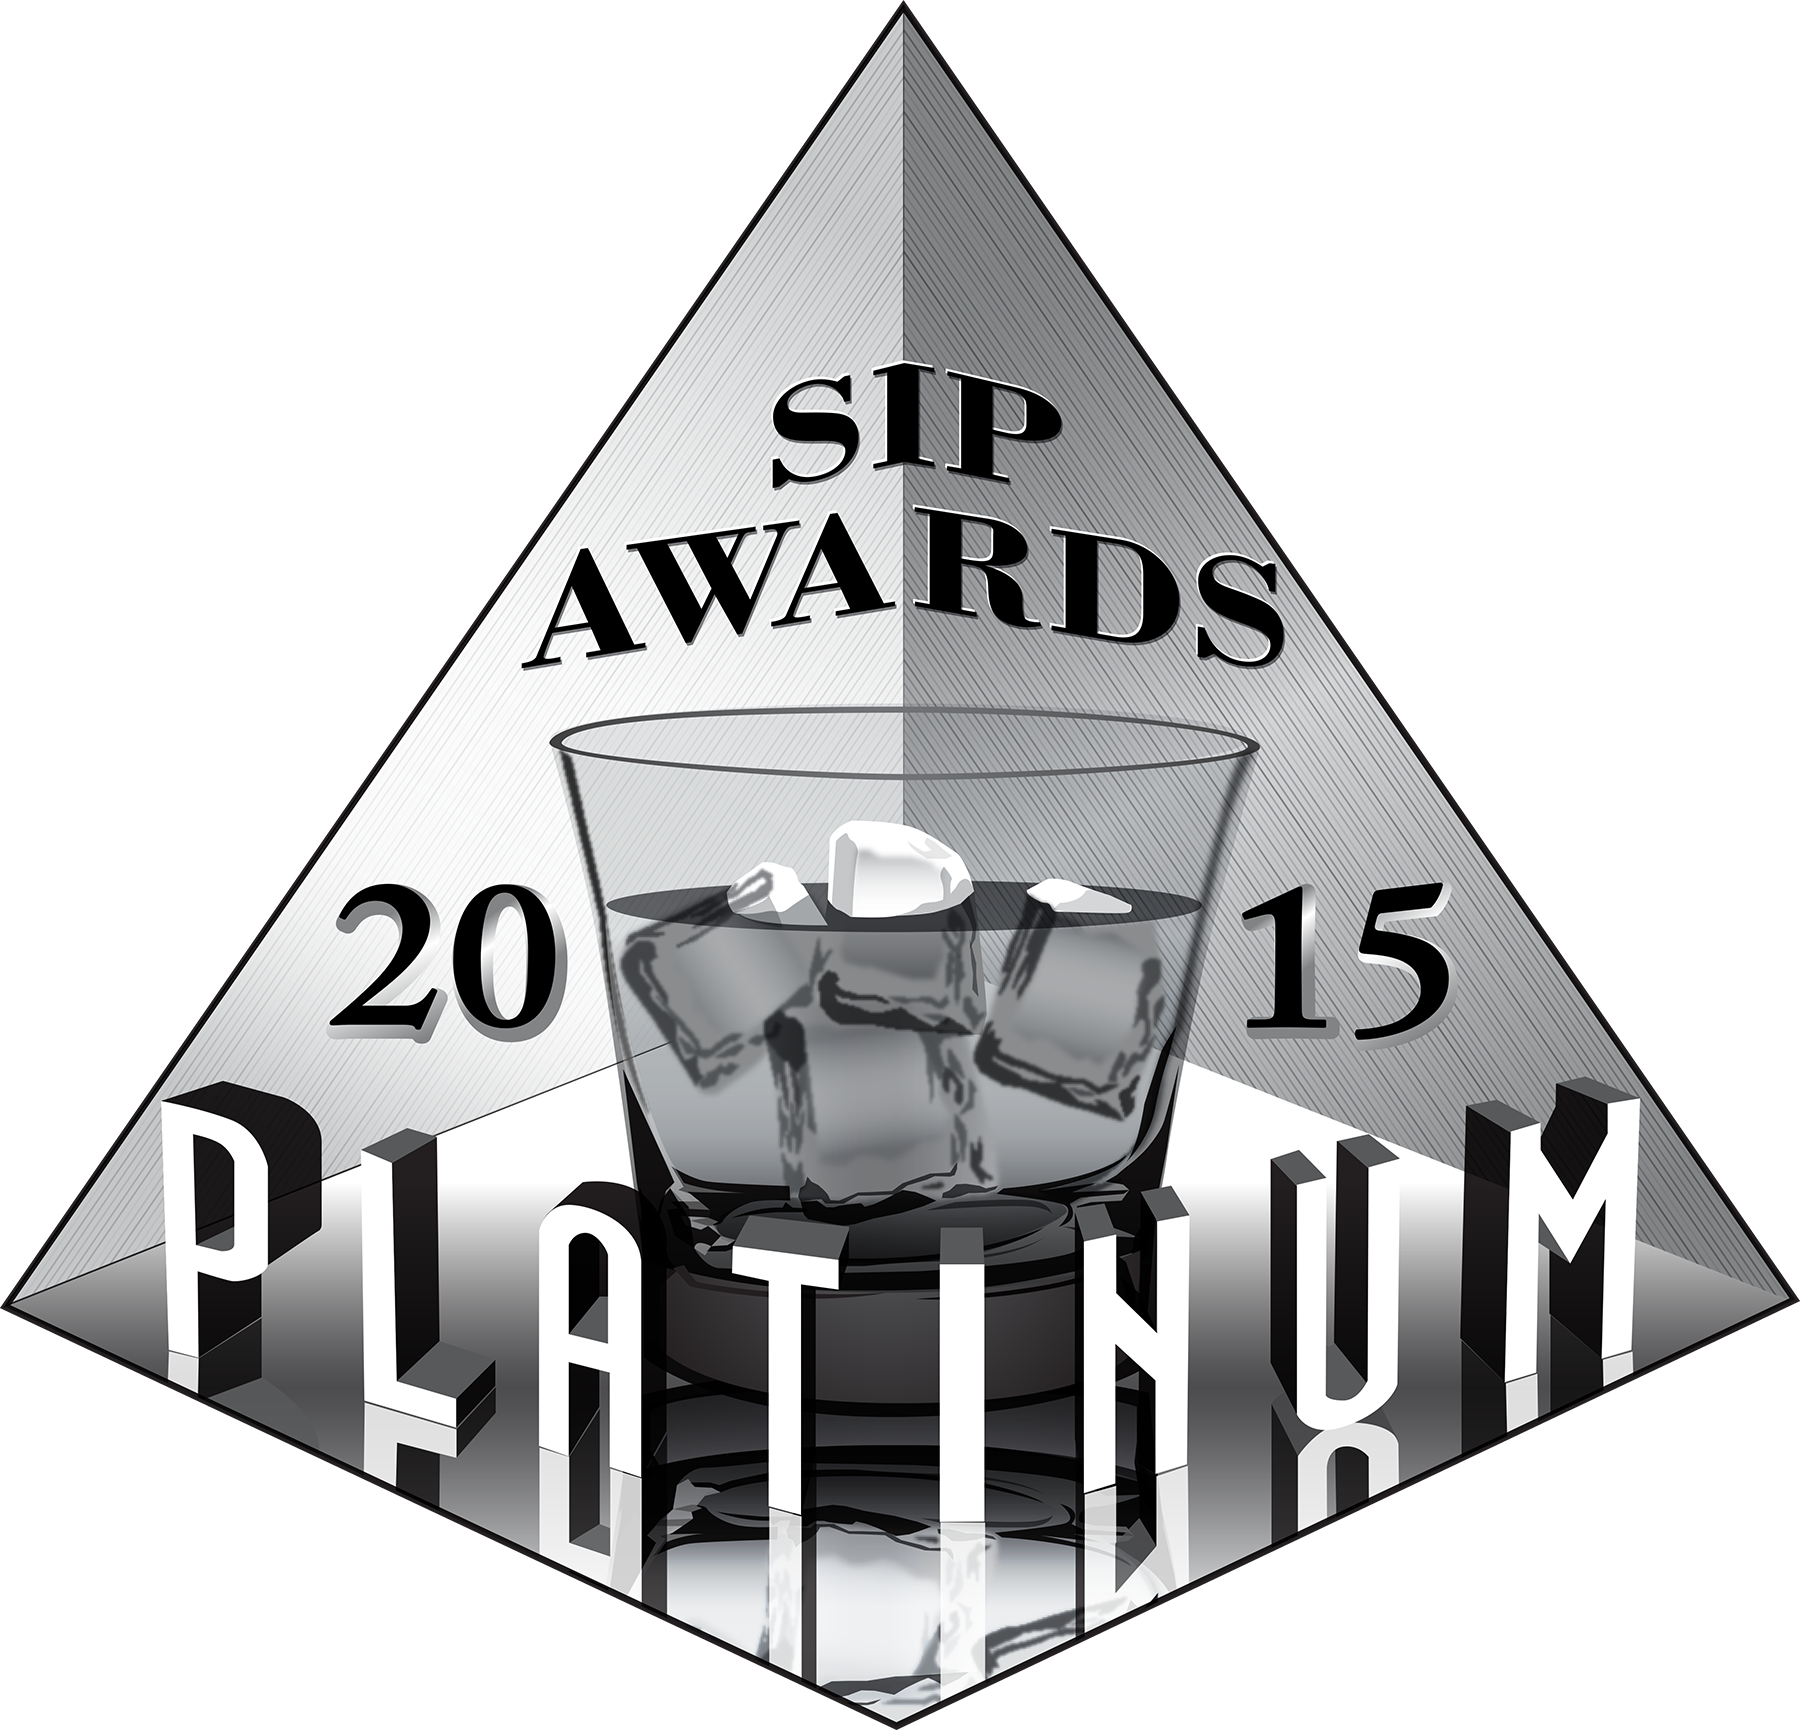 The Spirits International Prestige (SIP) Awards 2015